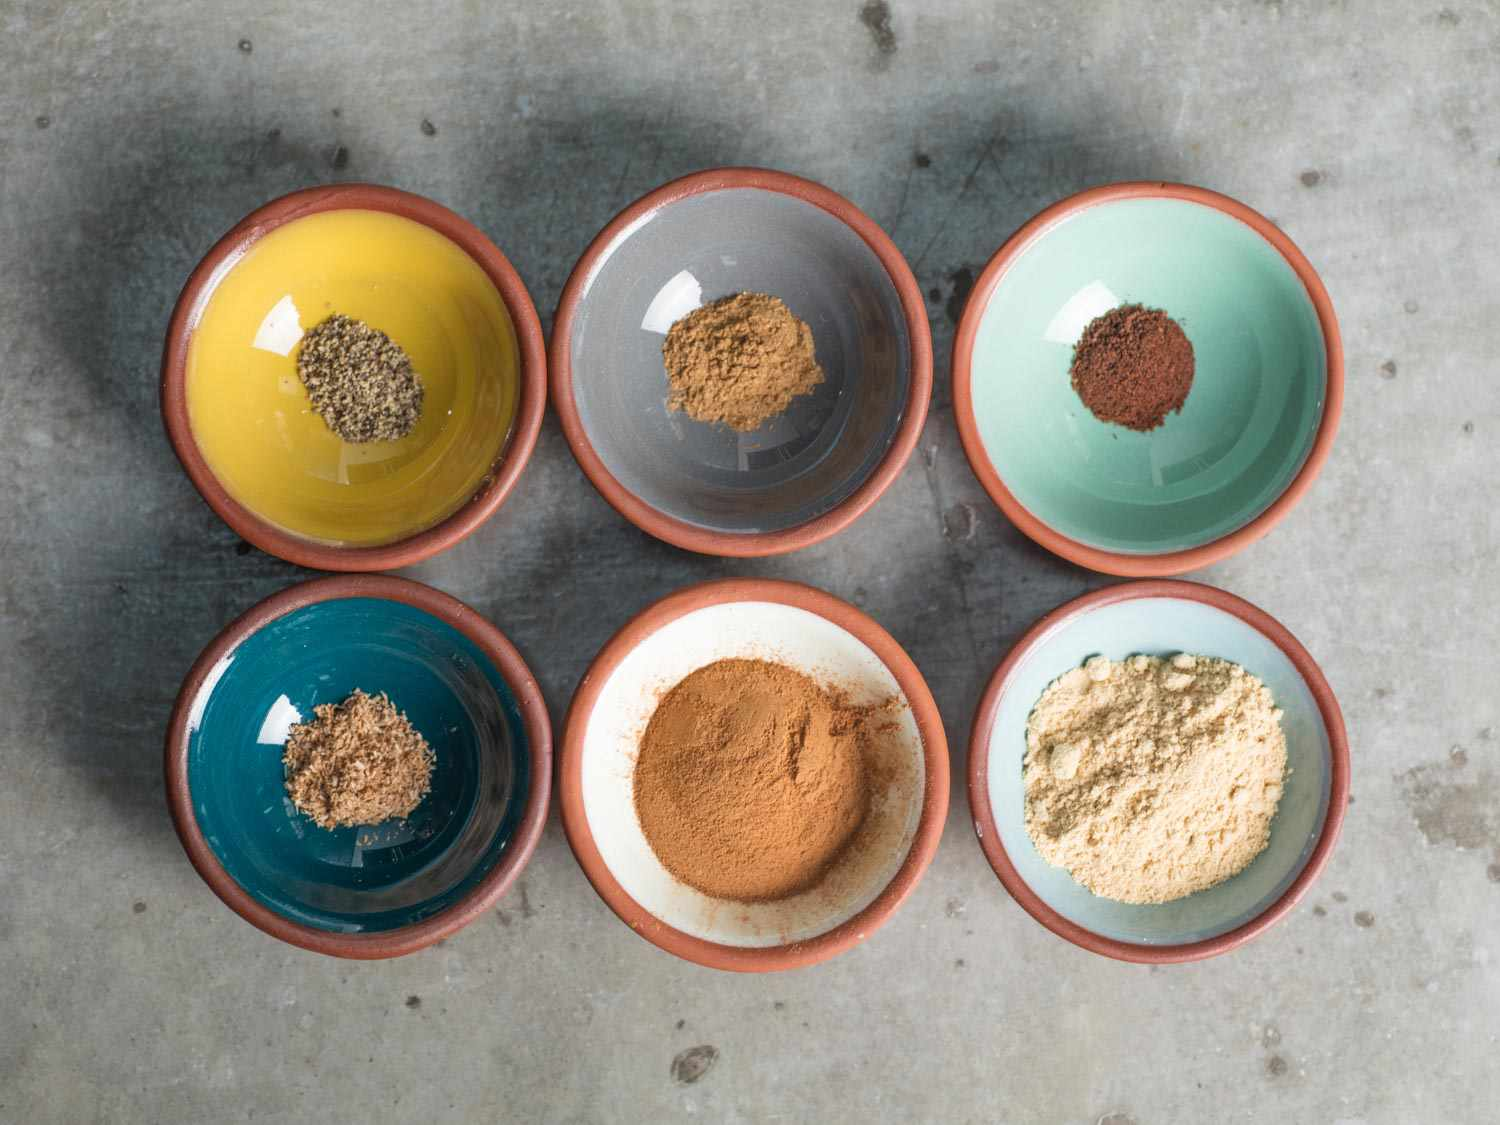 Gingerbread cake spices